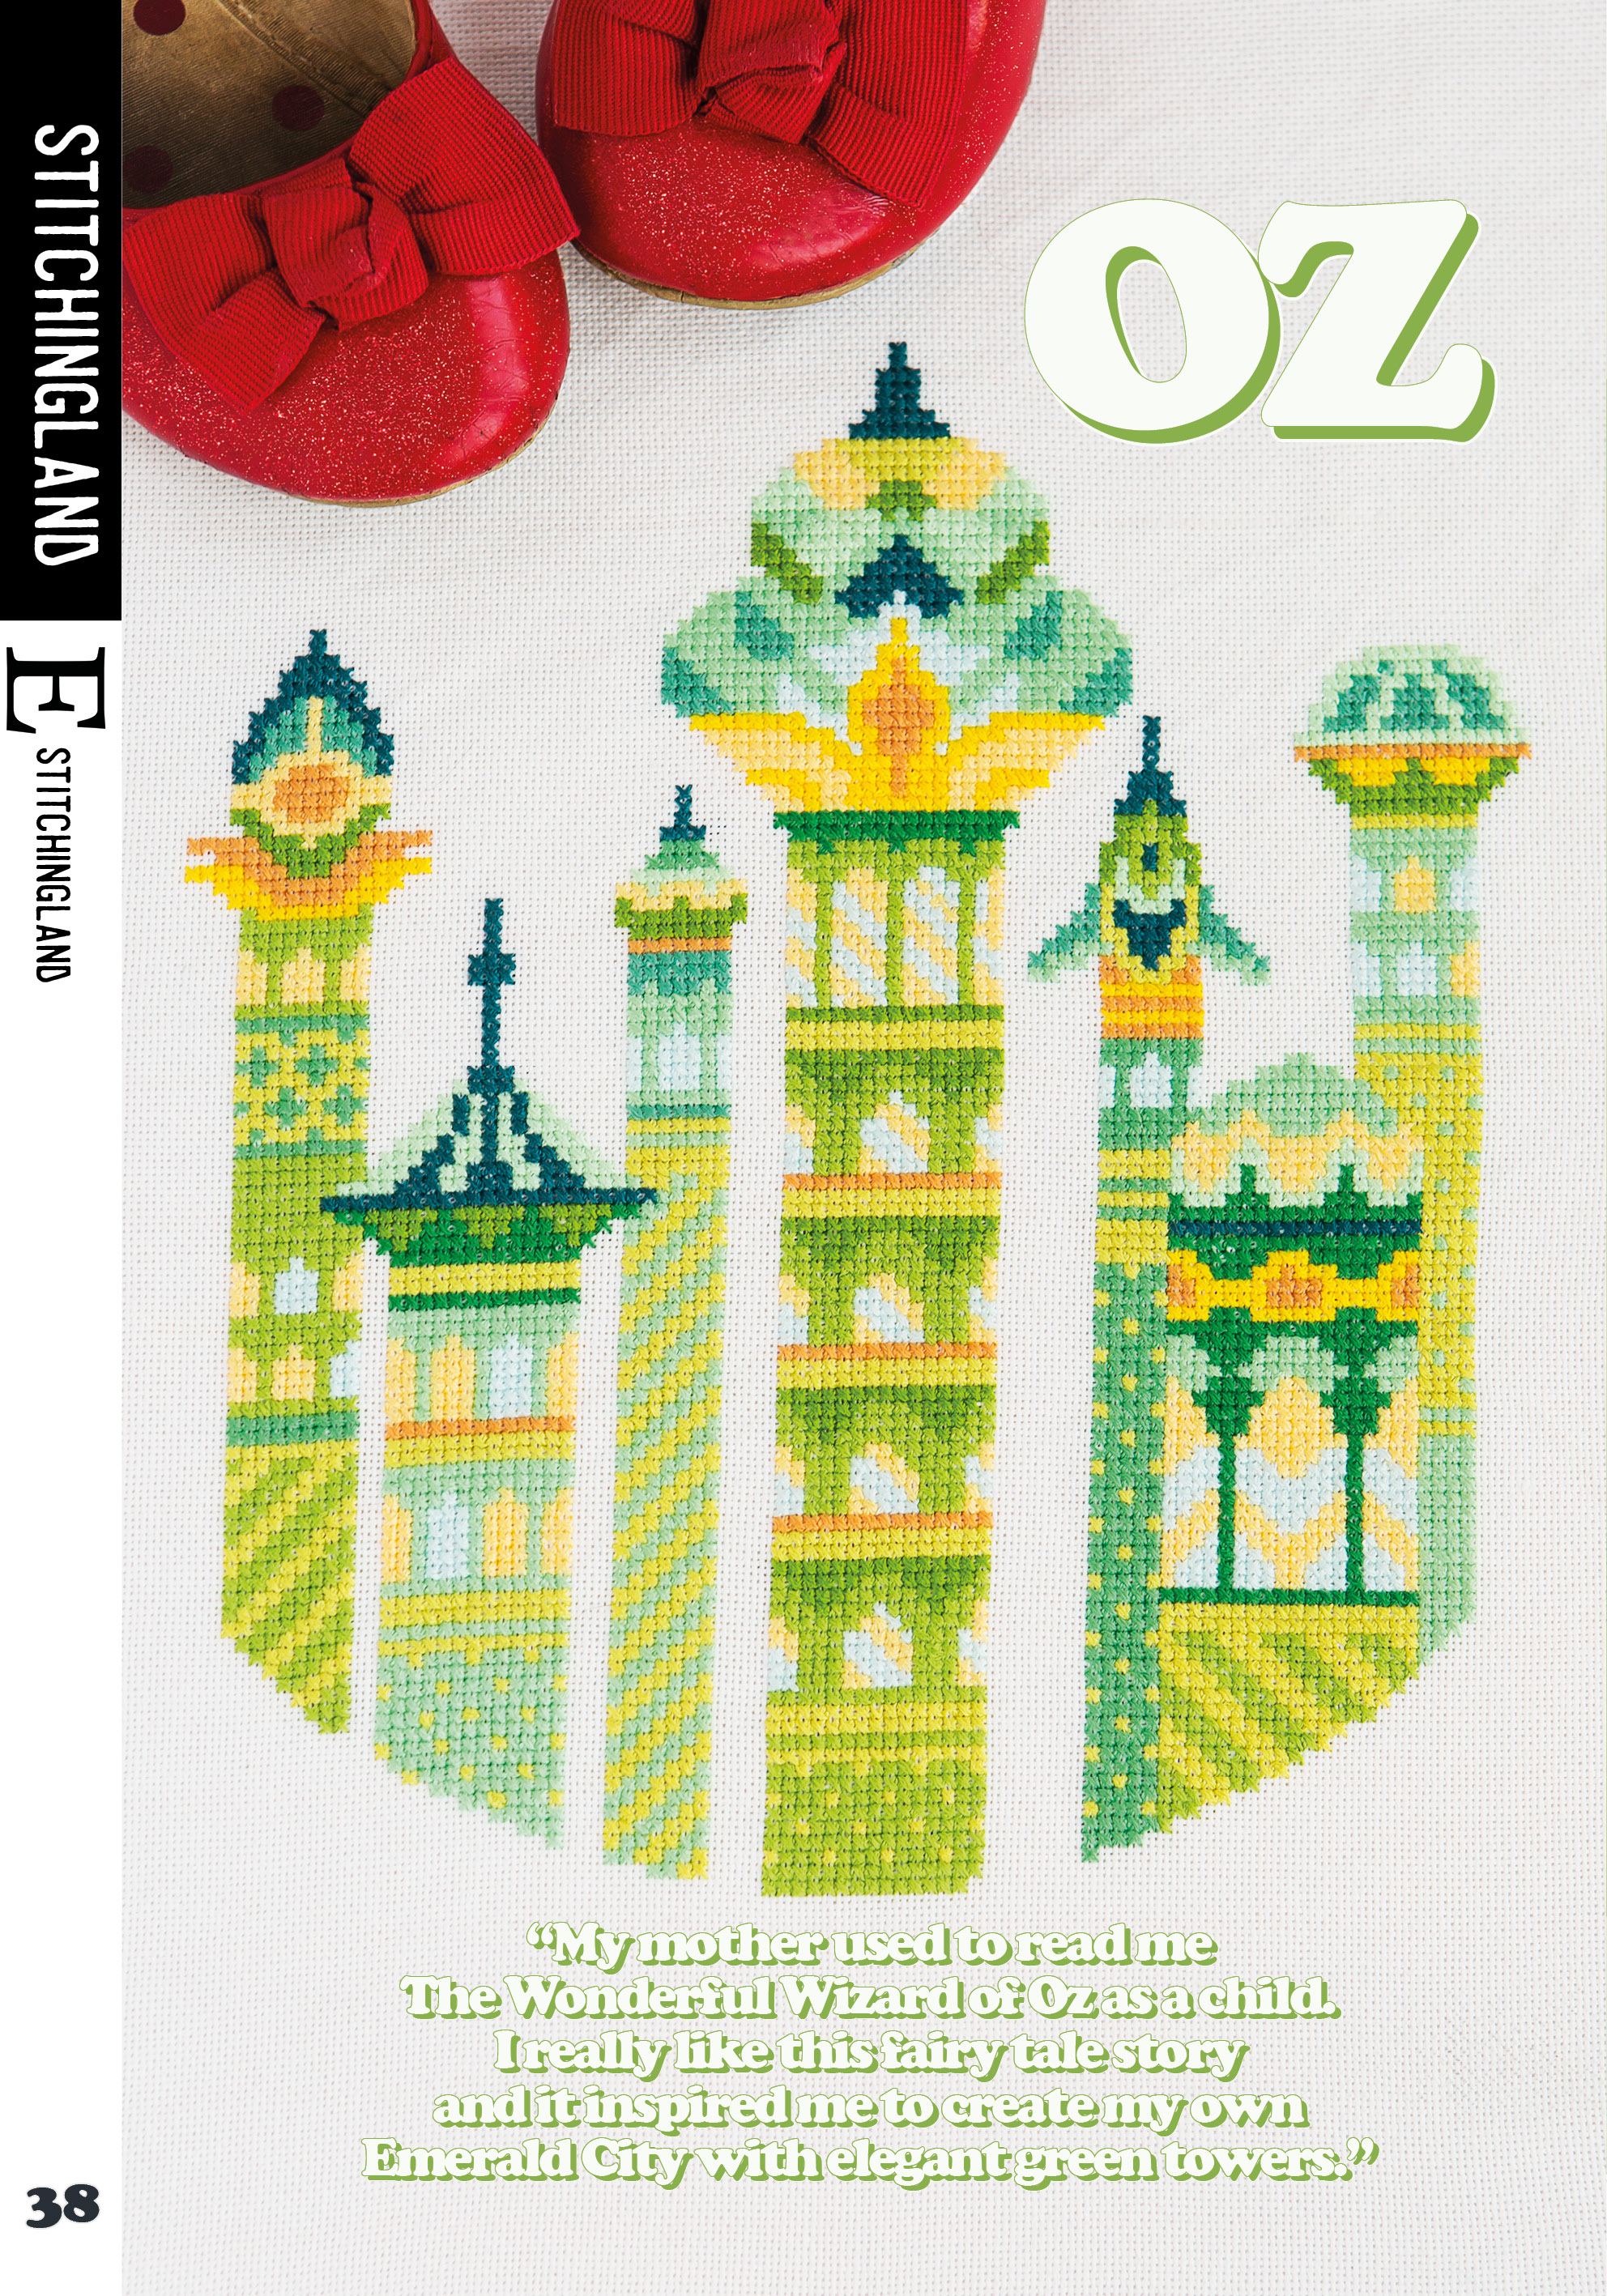 Issue 4 - Green!